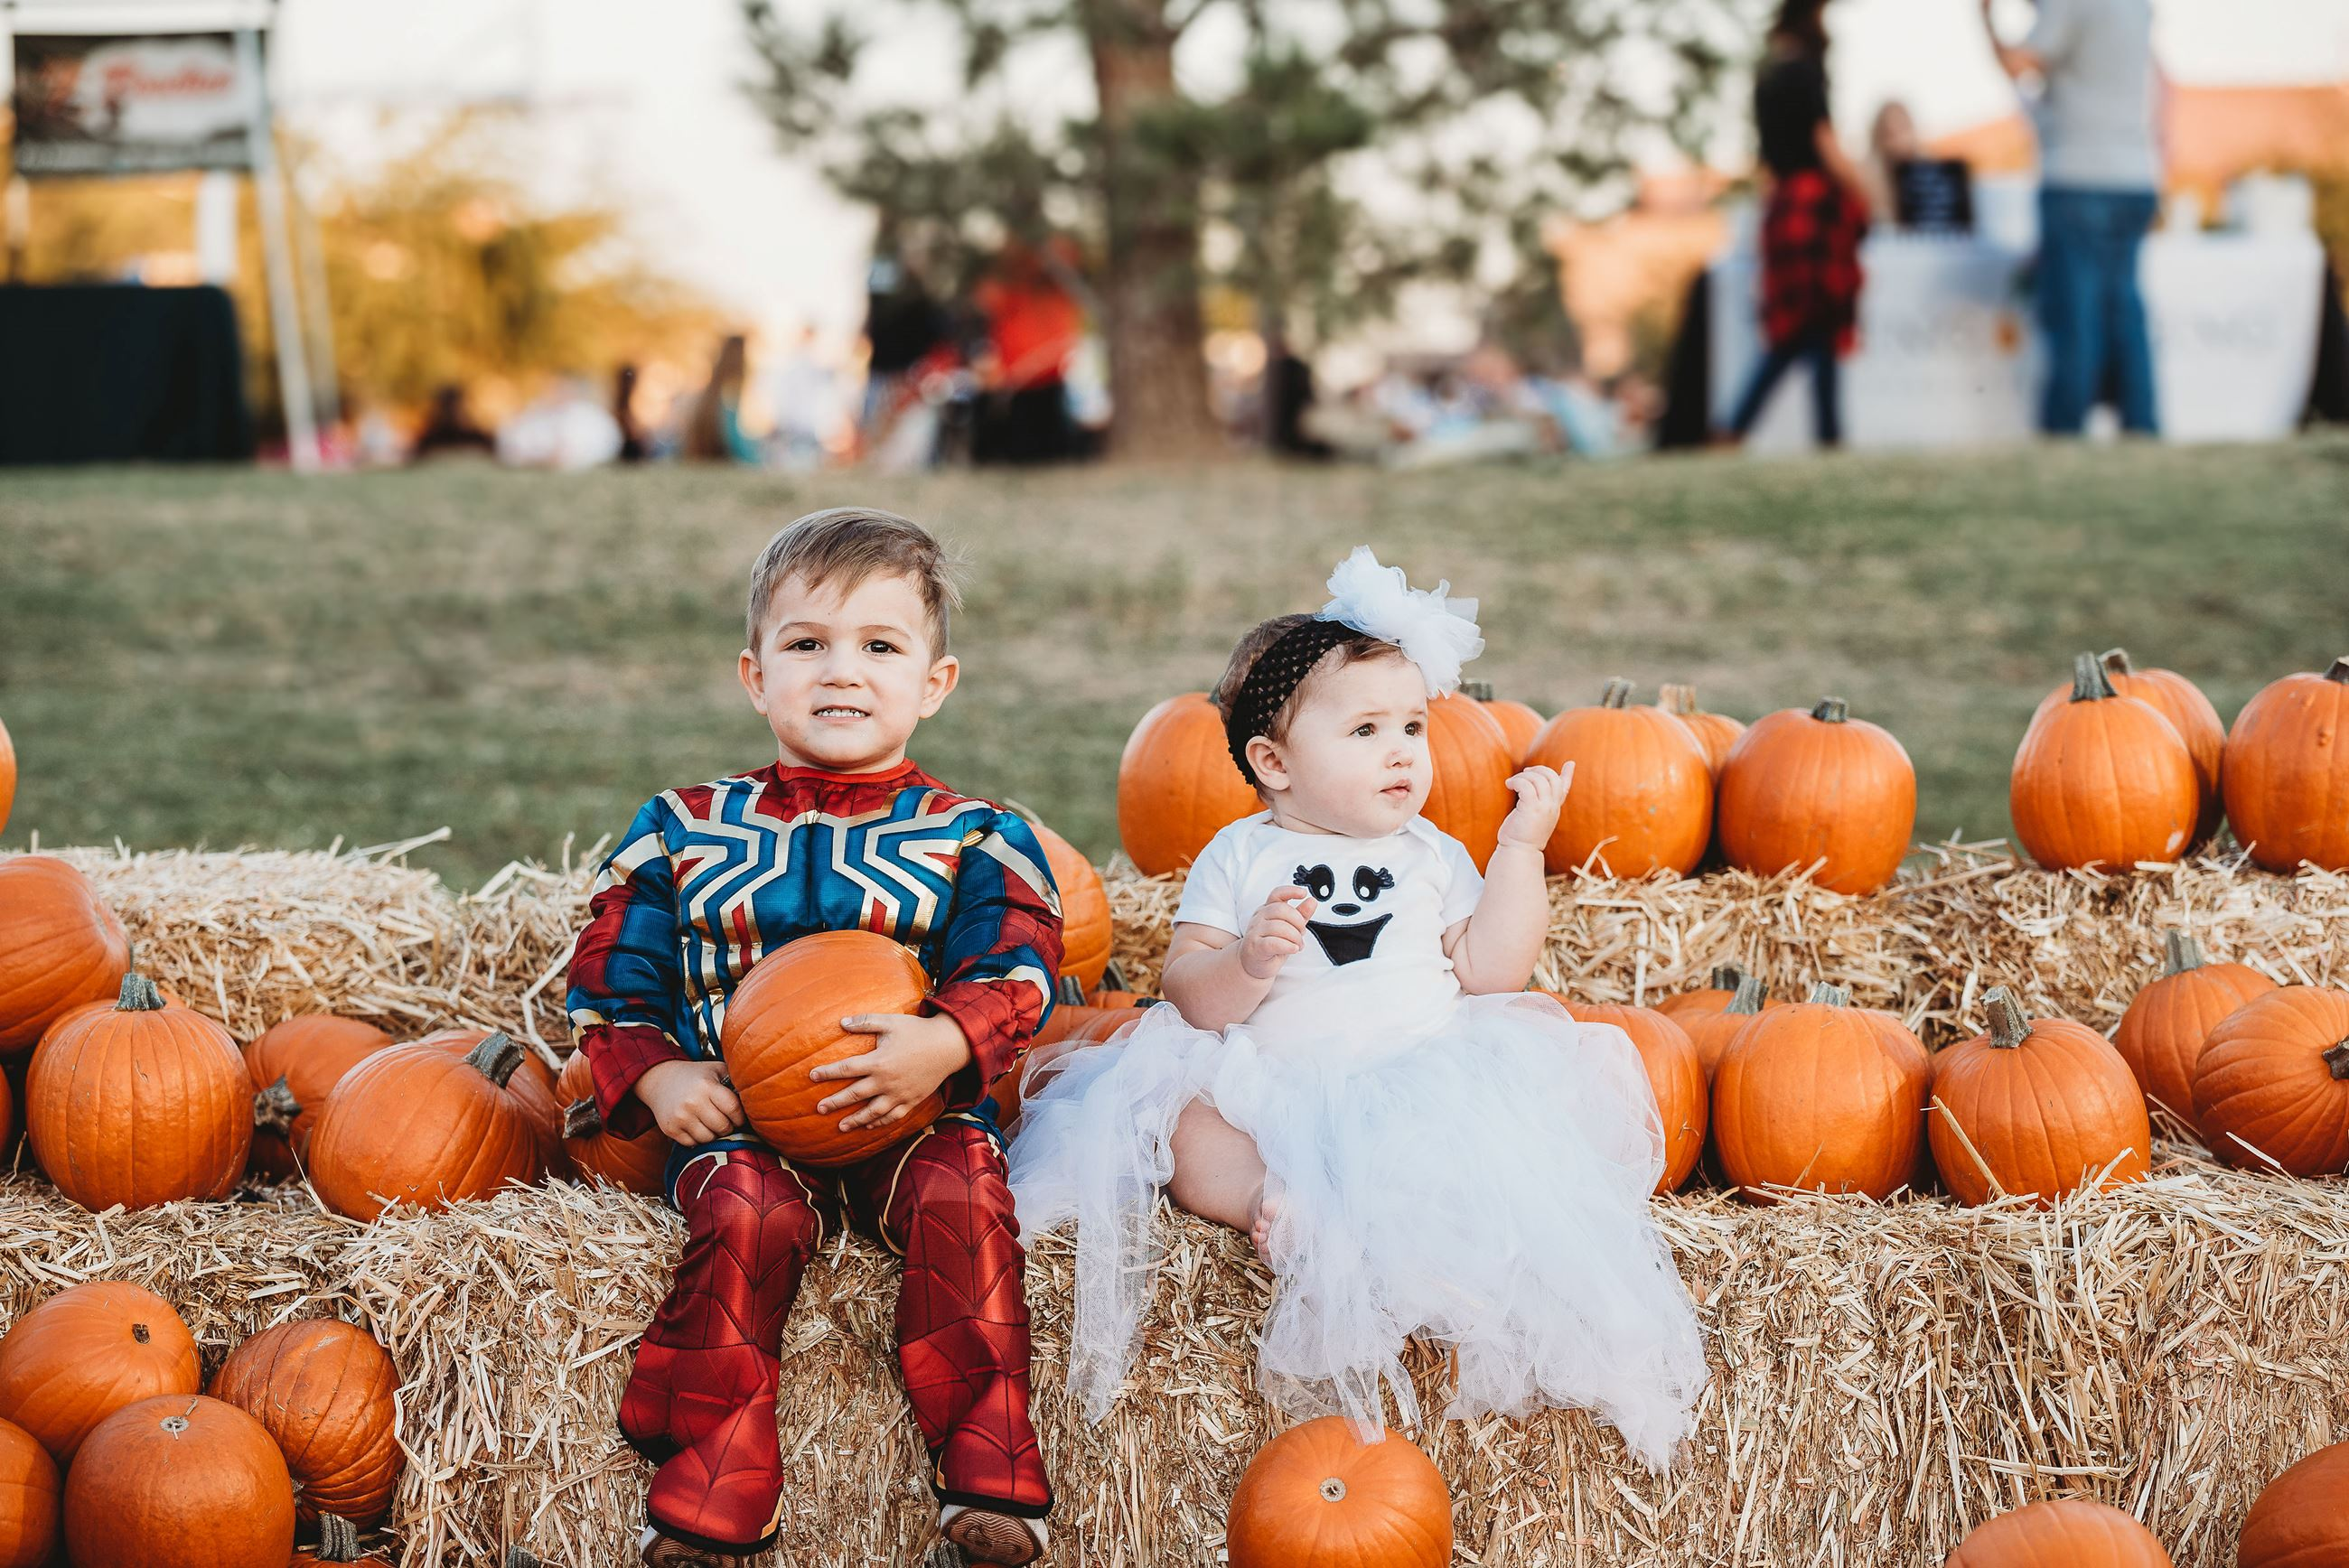 Boy Dressed as Spiderman, and His Sister as a Ghost, Sit on Hay Bales Between Lots of Pumpkins